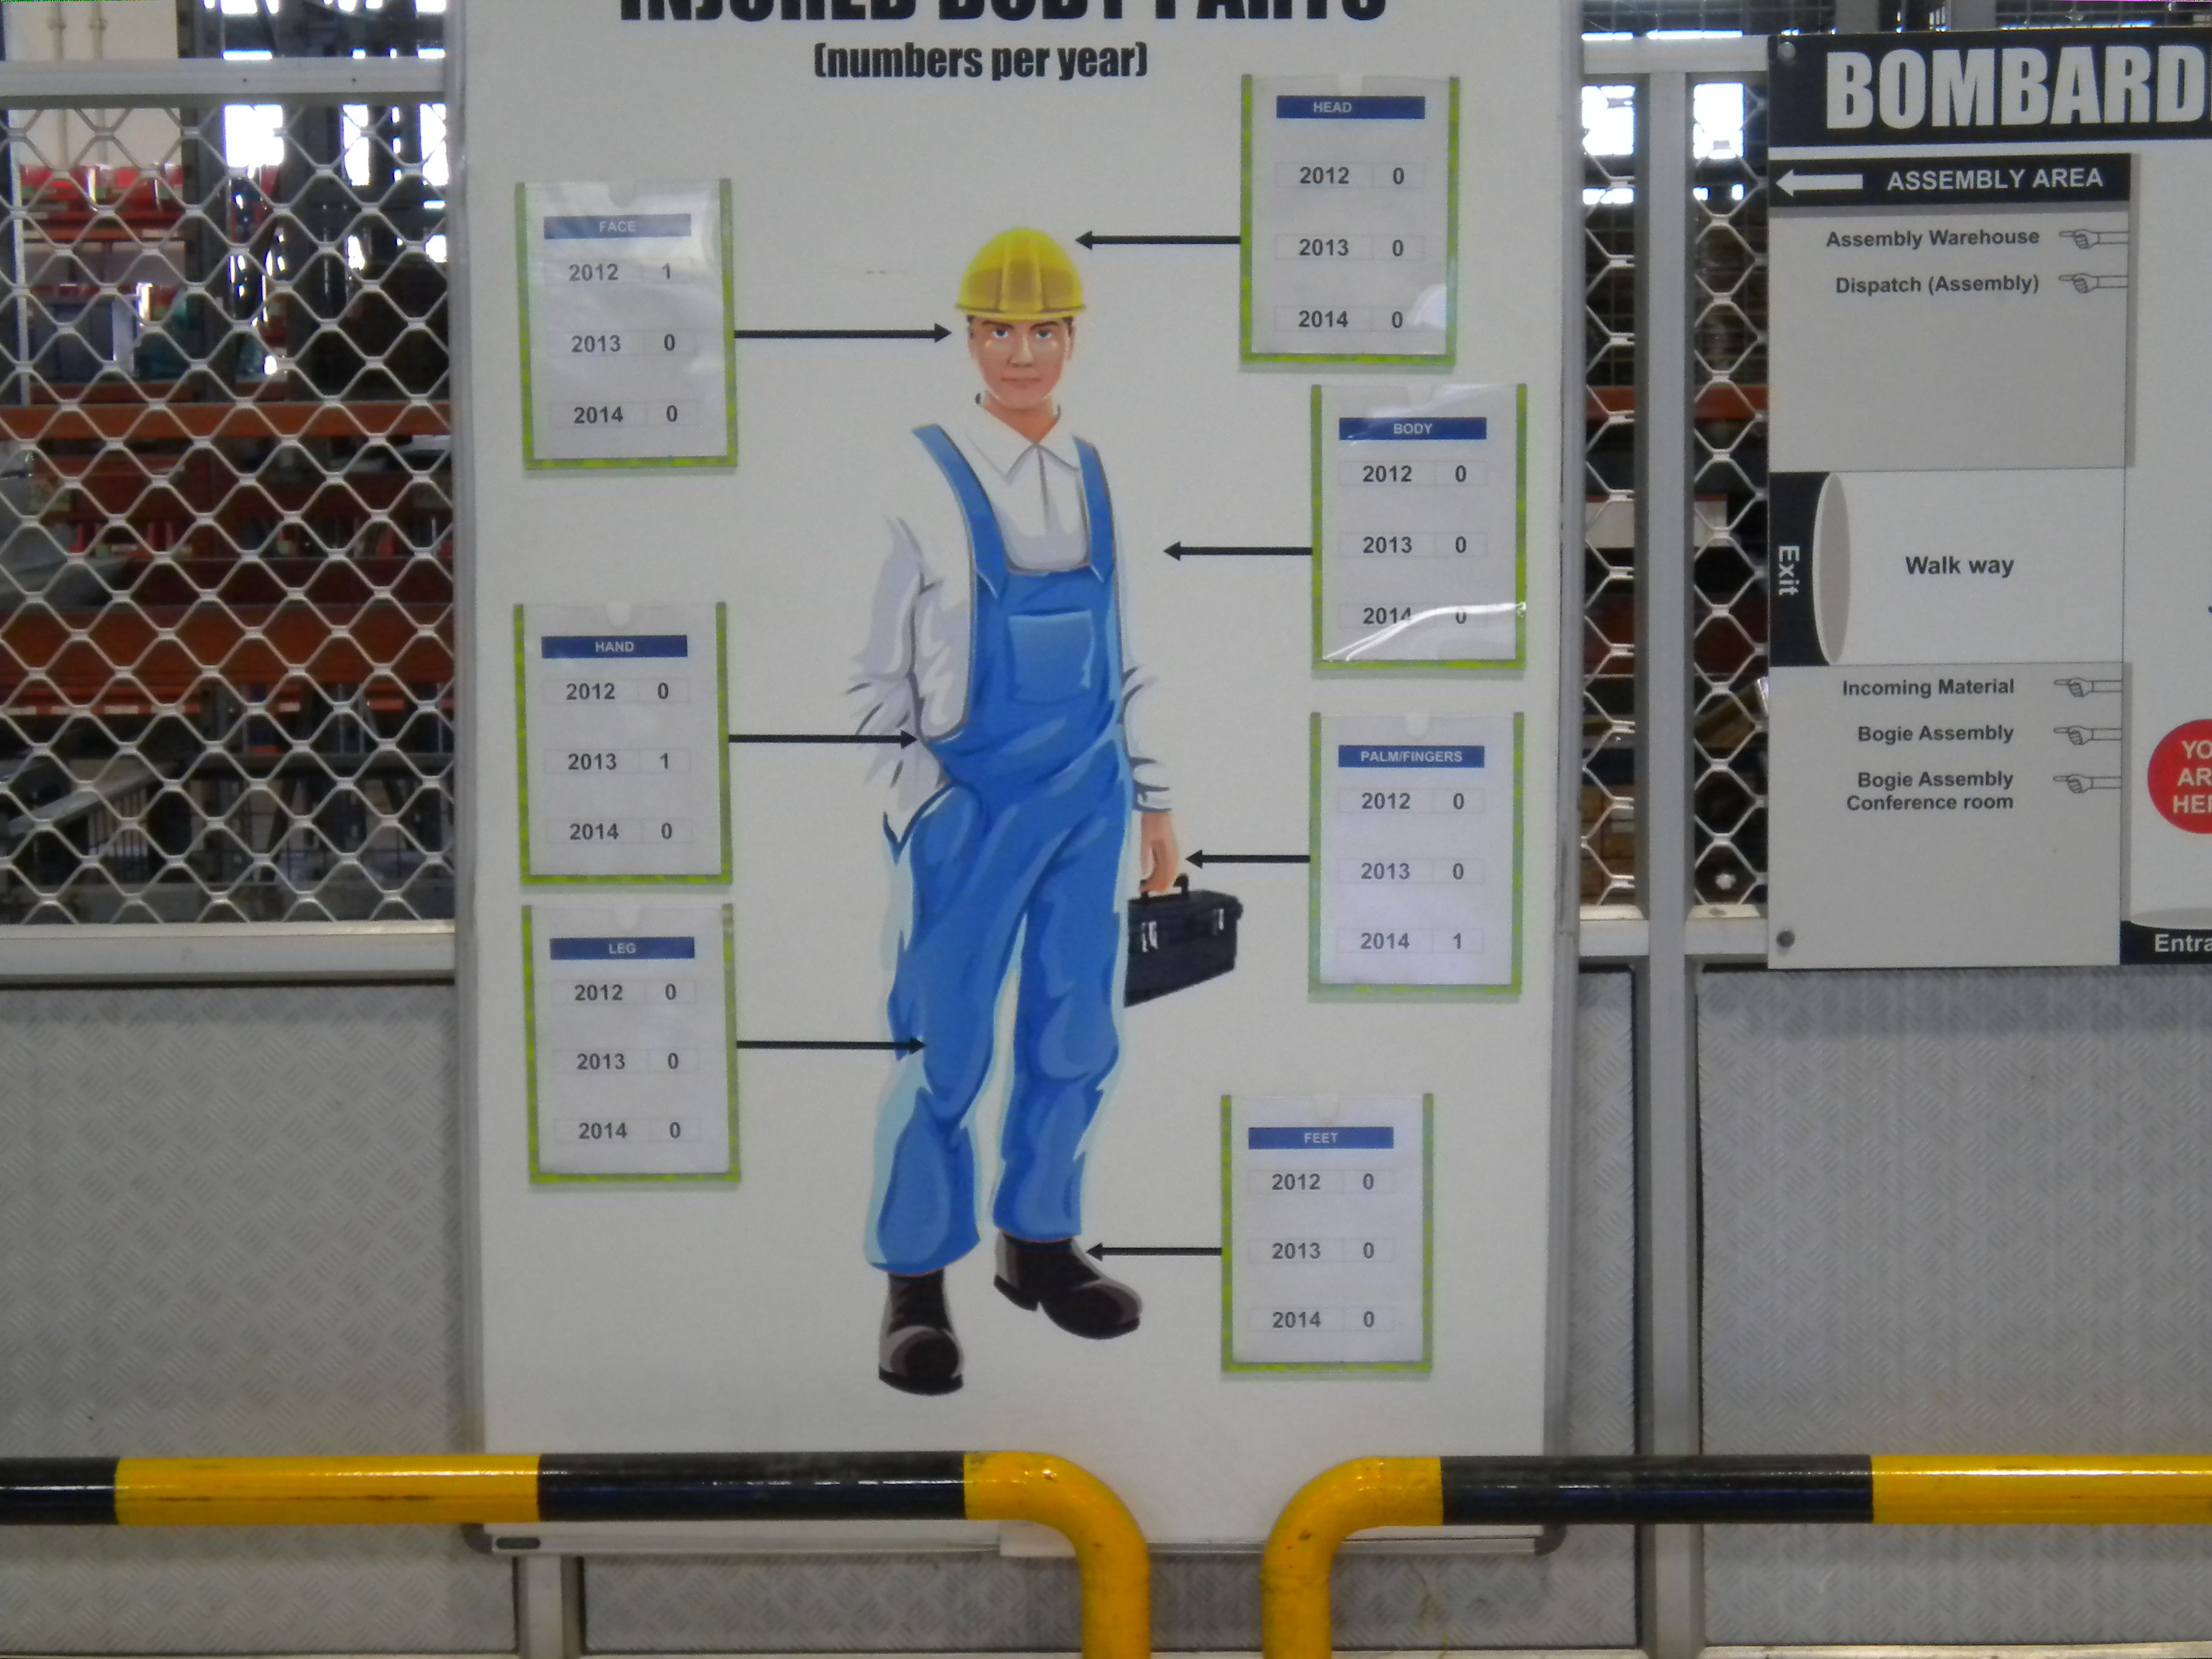 VisualFactory and creation of visual safety board at